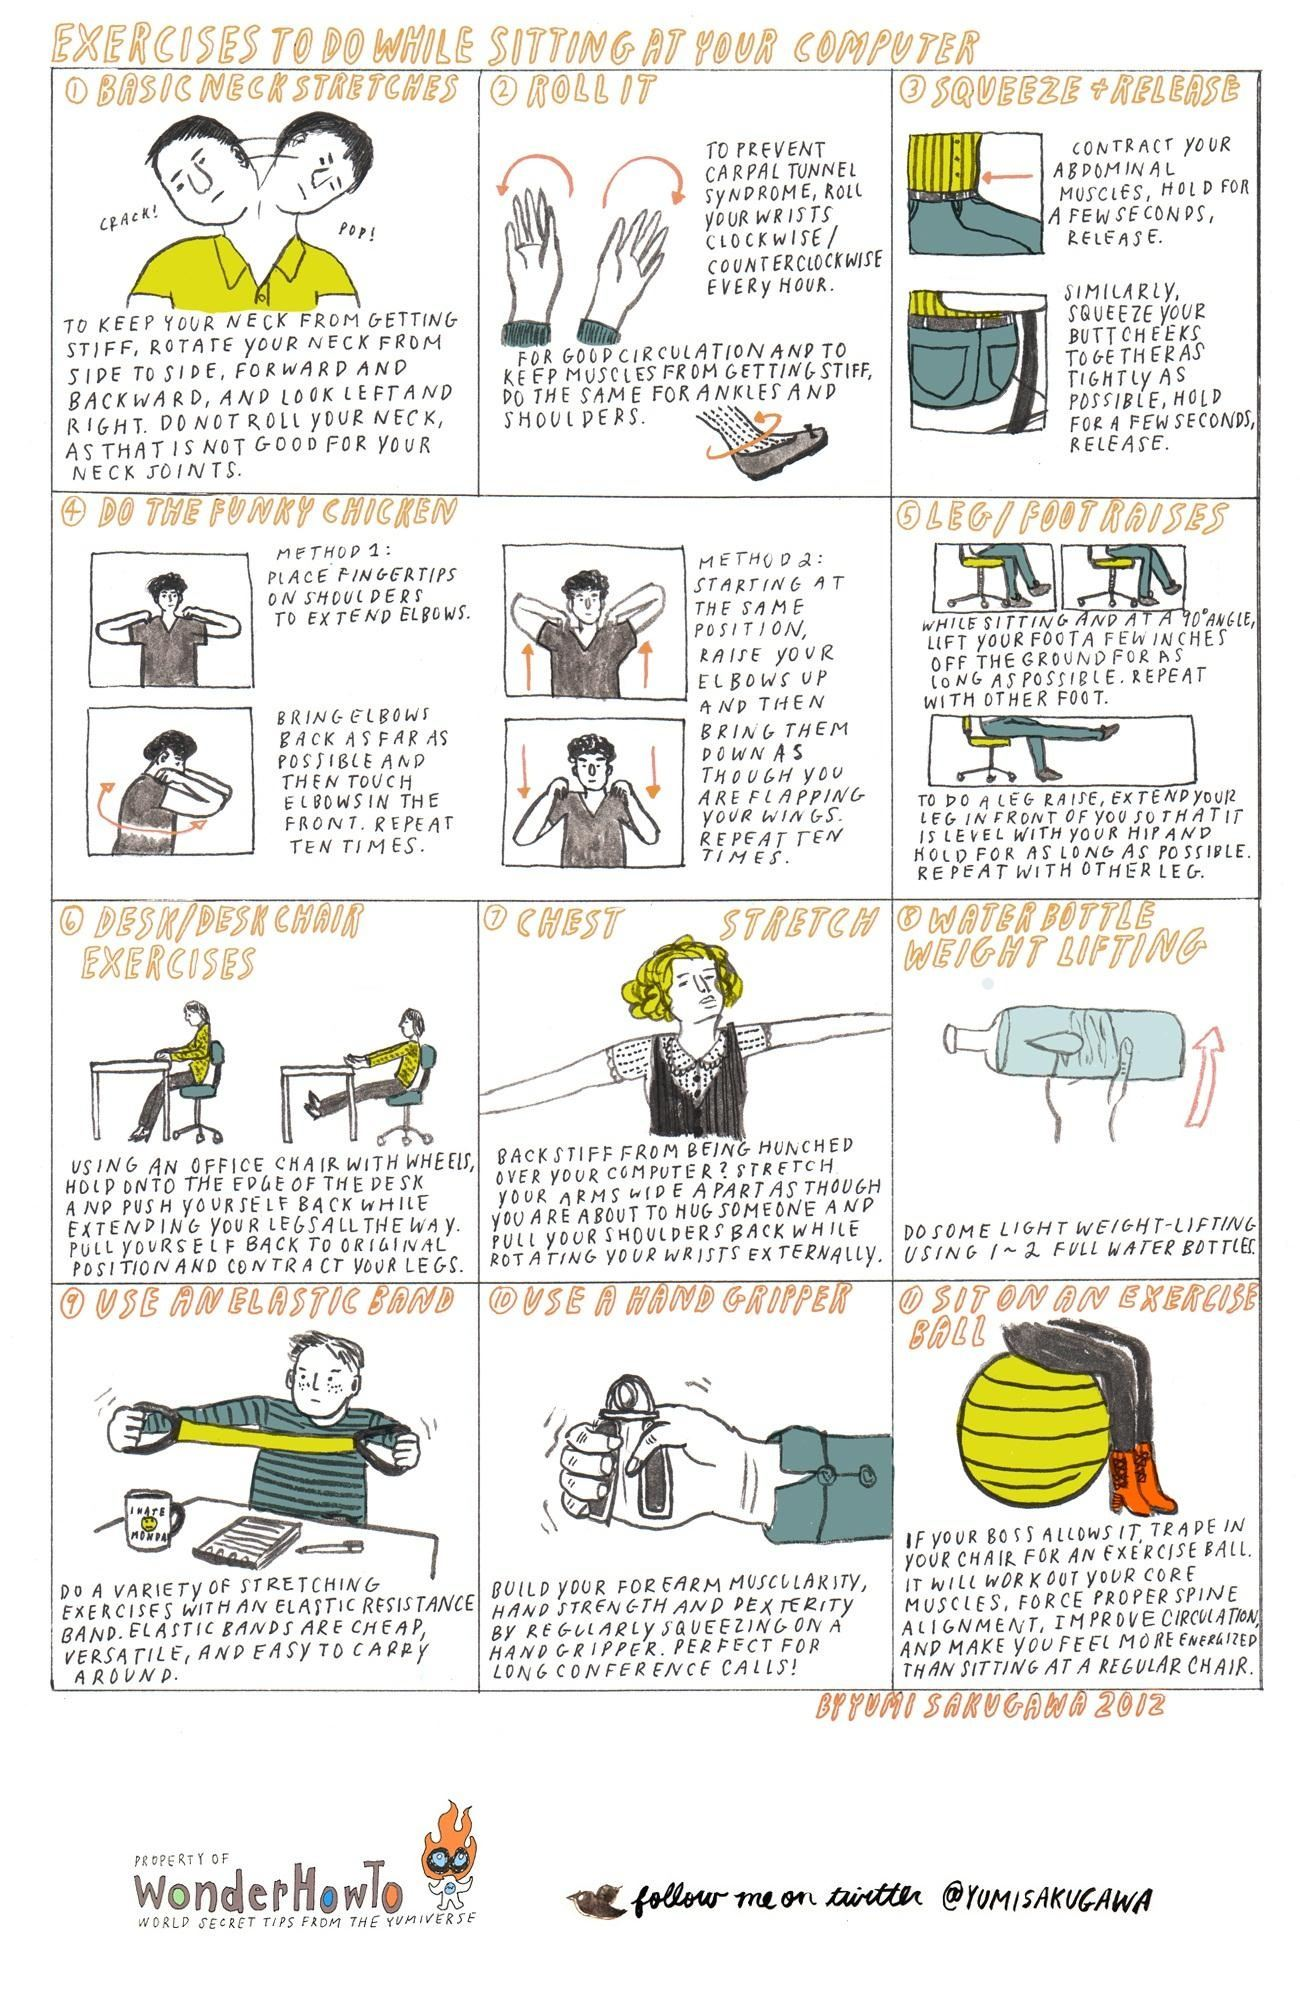 11 exercises to do while sitting at your computer « the secret